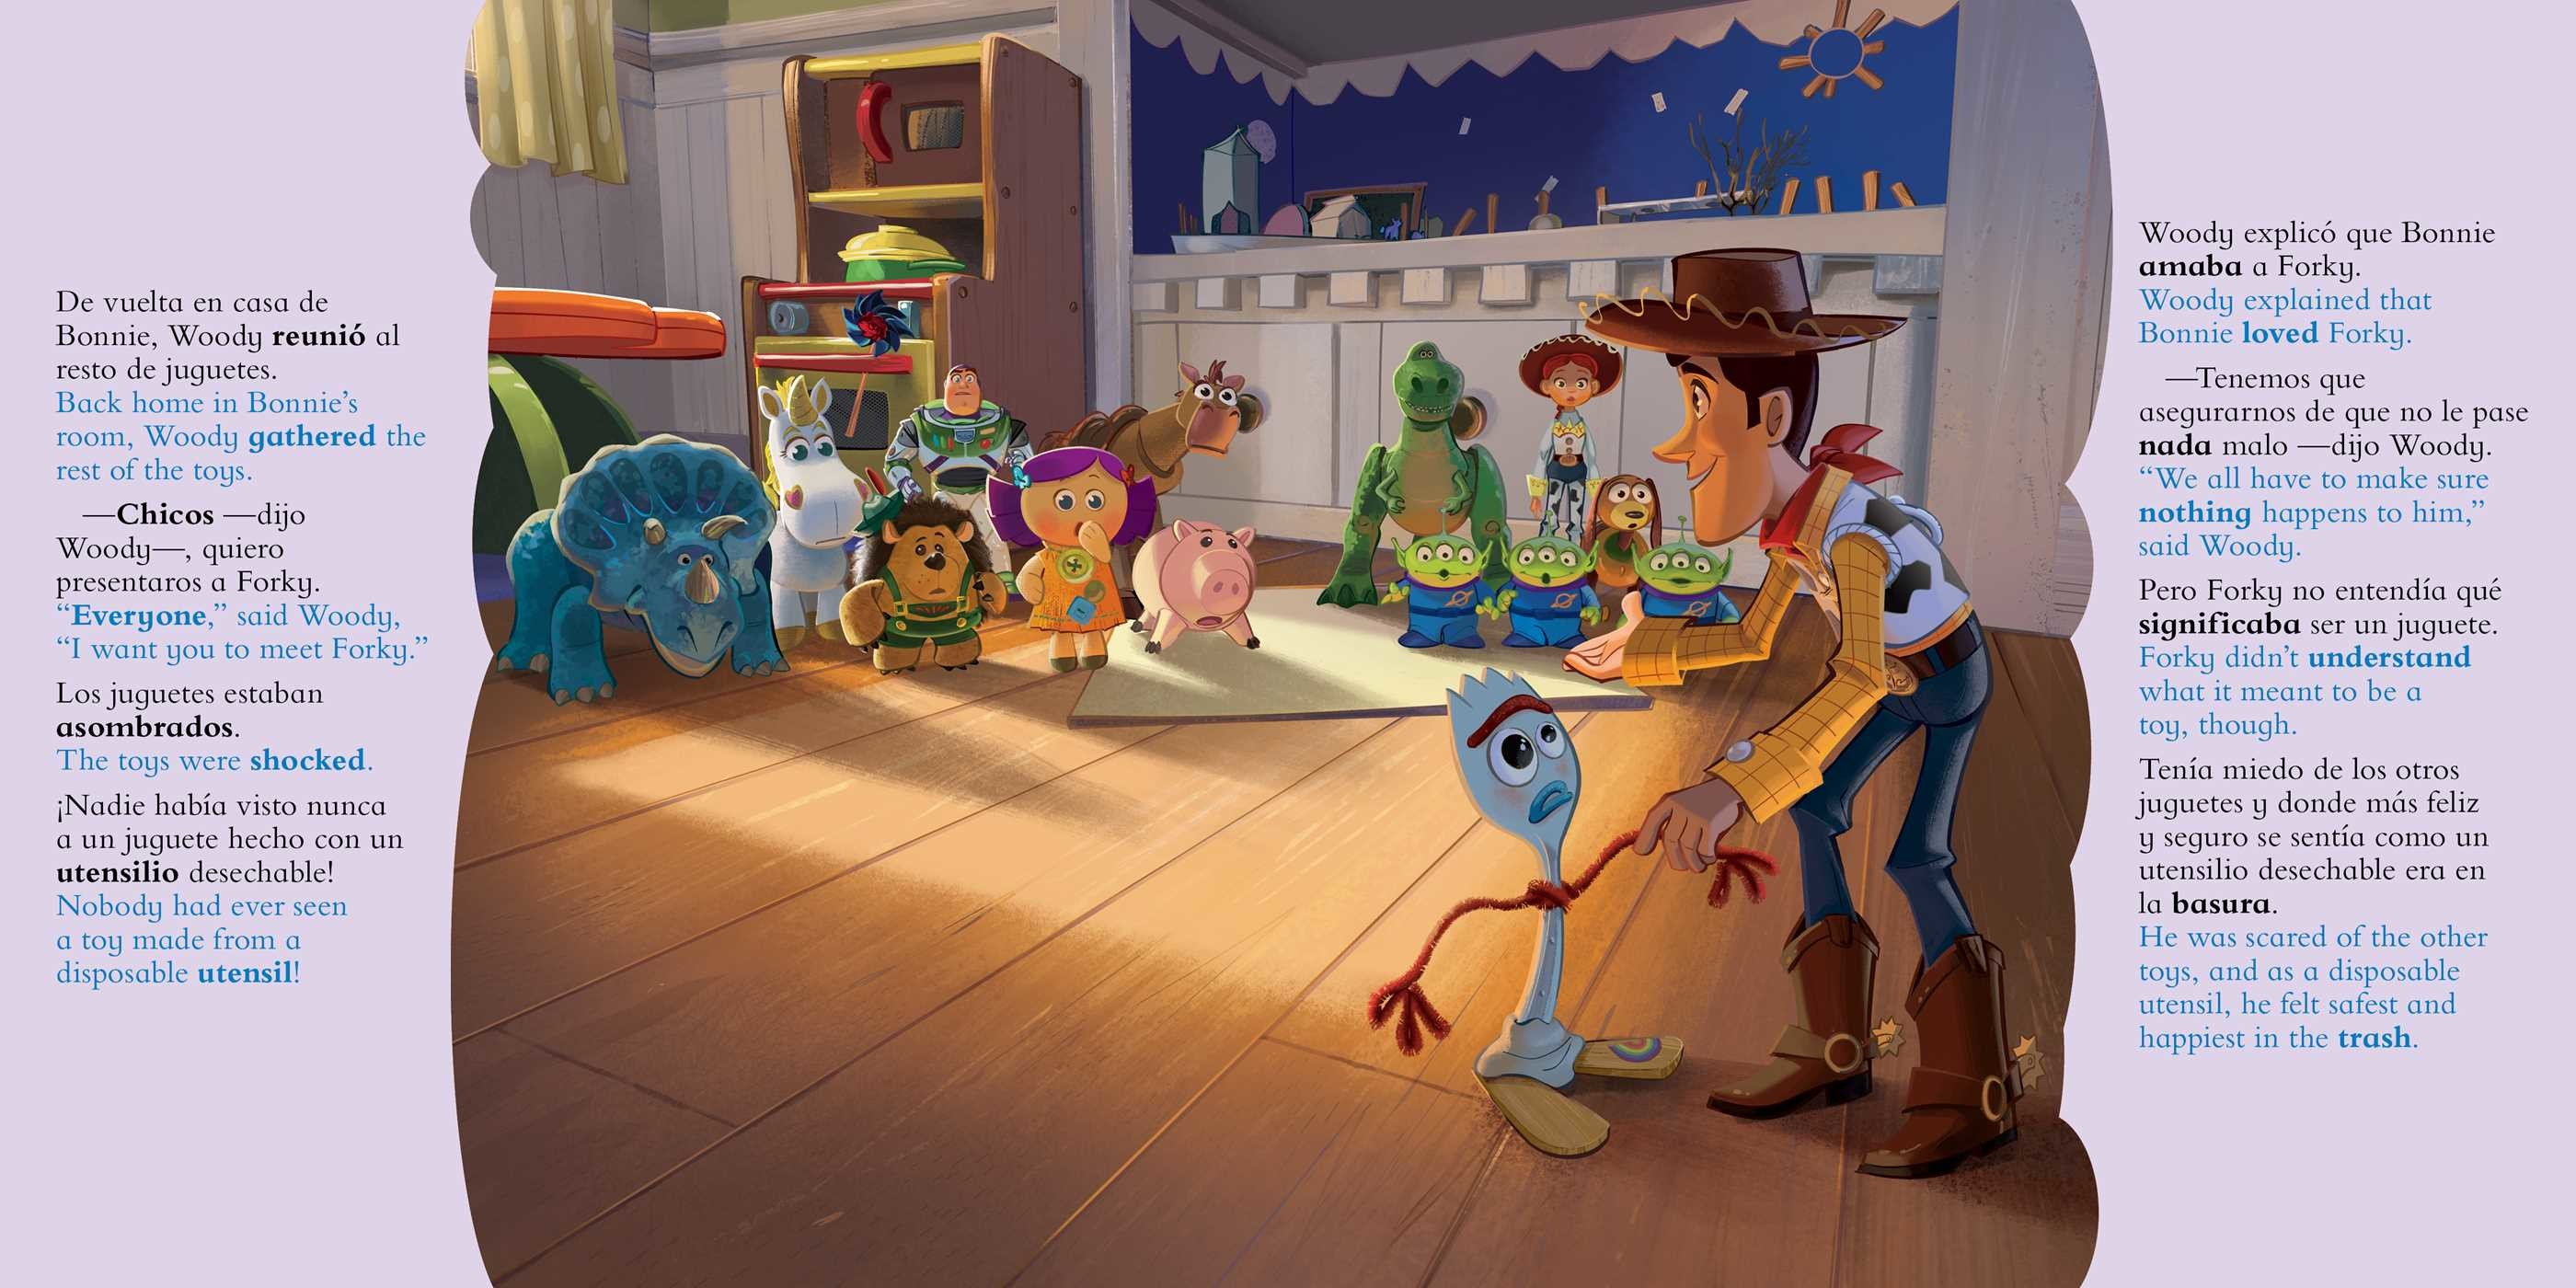 Disney/Pixar Toy Story 4: Movie Storybook / Libro basado en la película (English-Spanish)